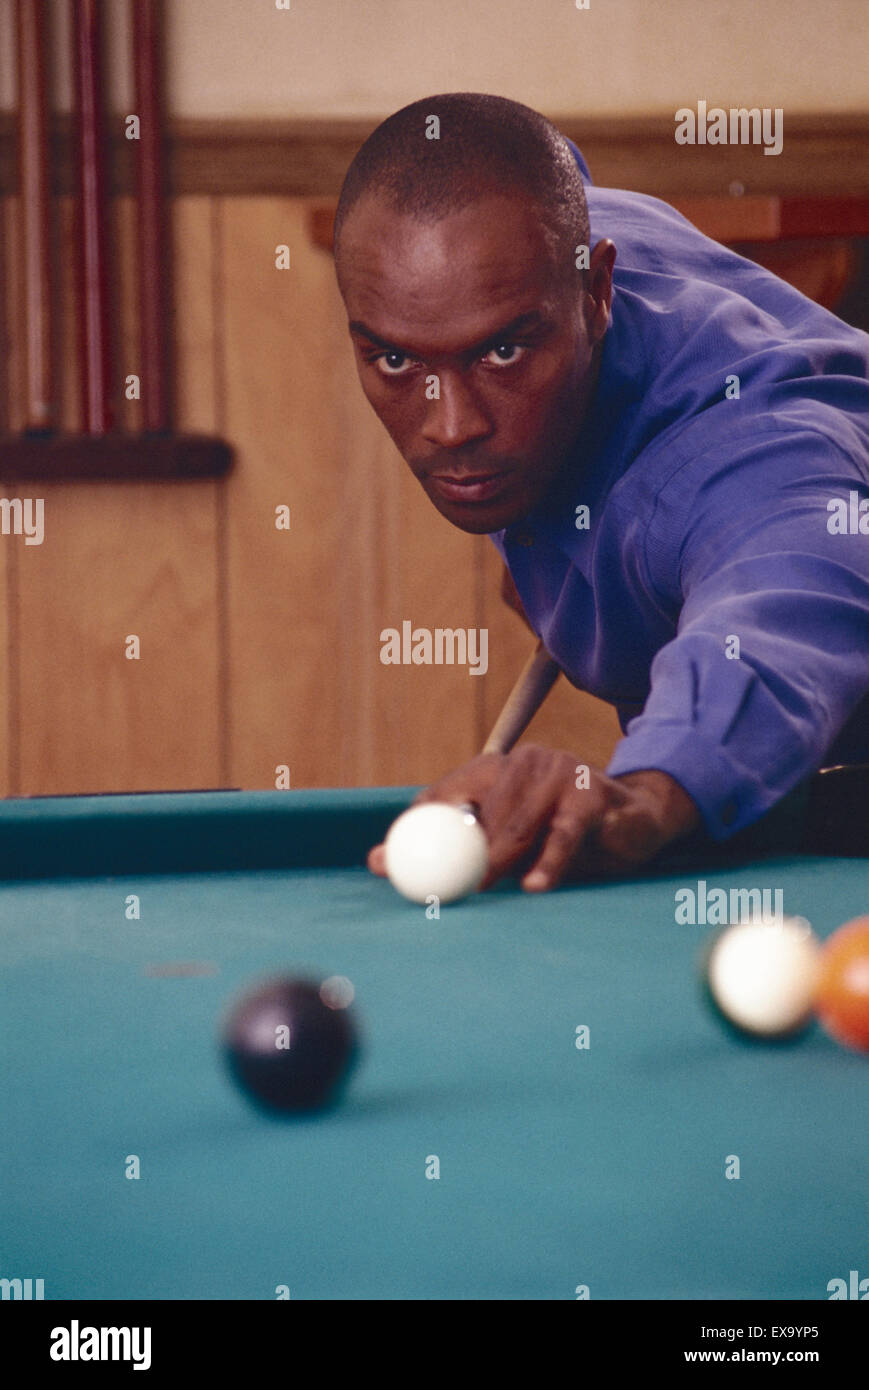 Male playing billiards. - Stock Image